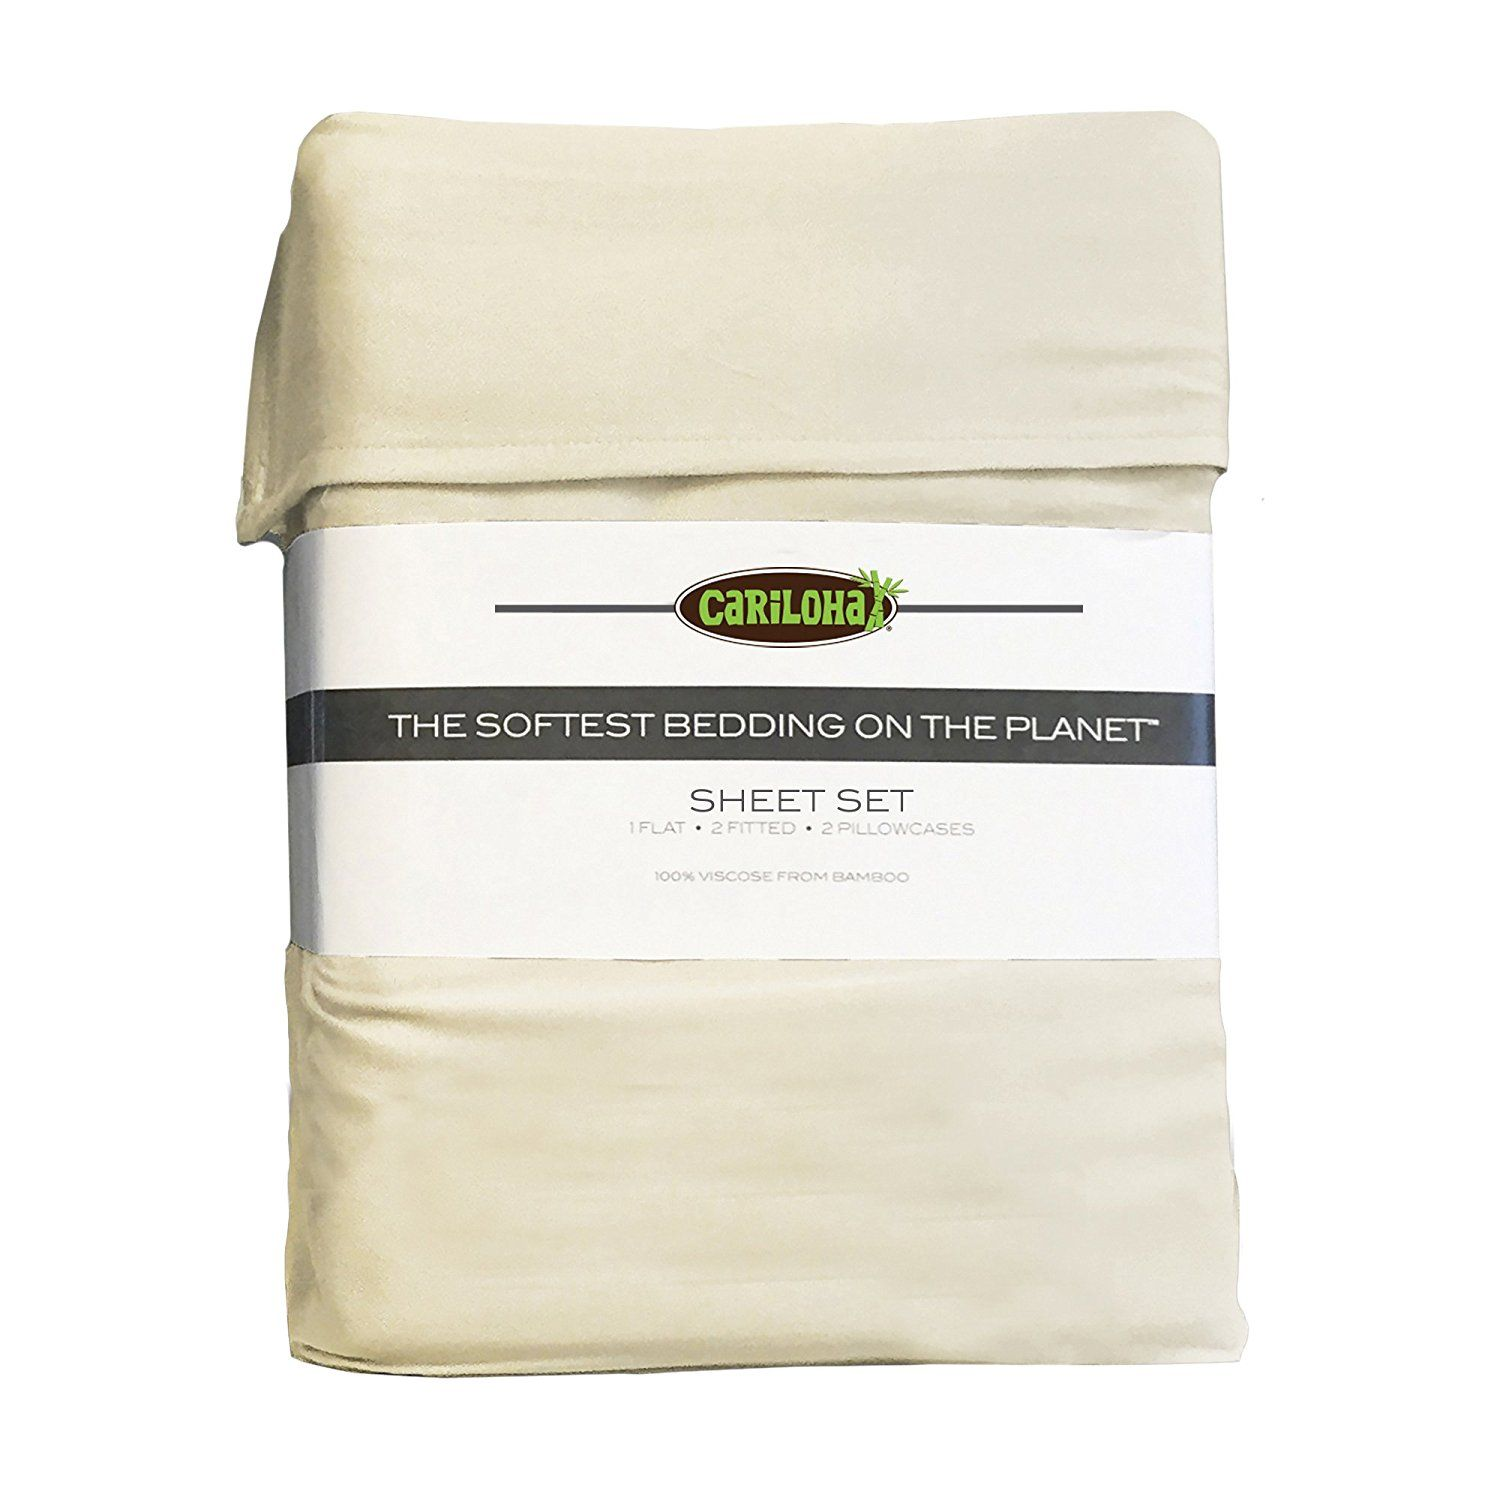 Cariloha Crazy Soft Classic King Sheets 4